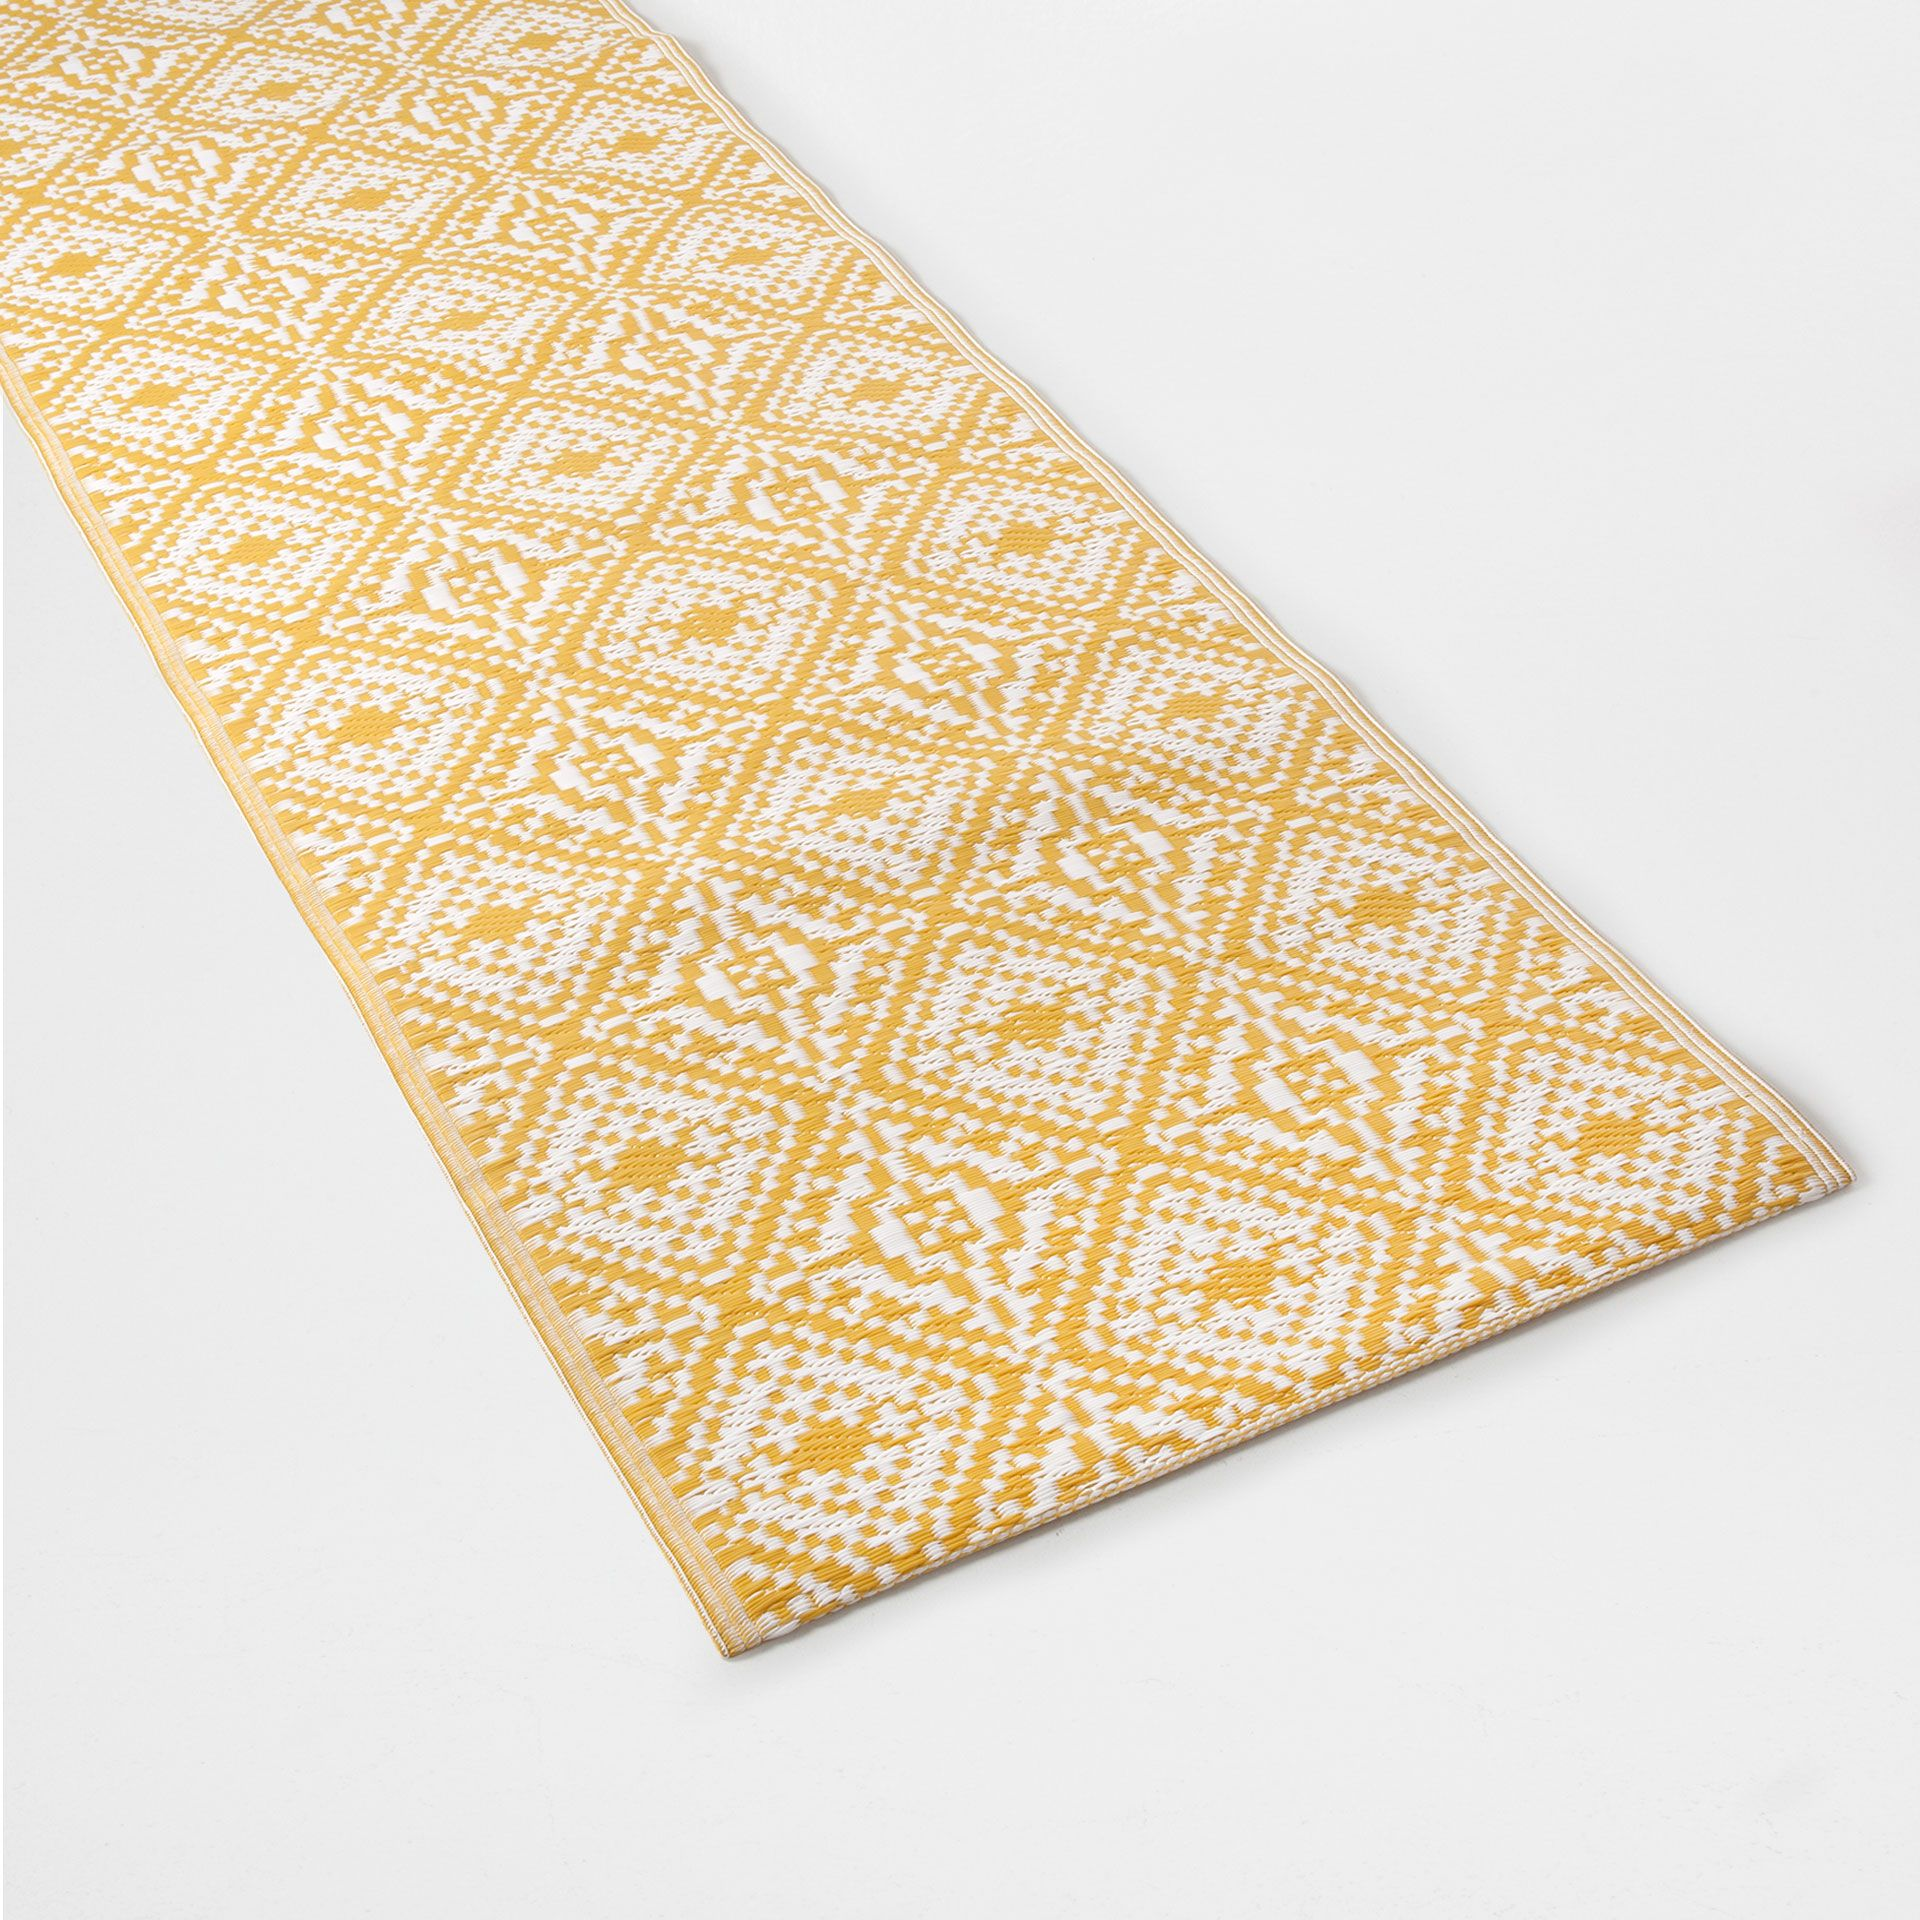 Ochre Patterned Plastic Rug Indoor And